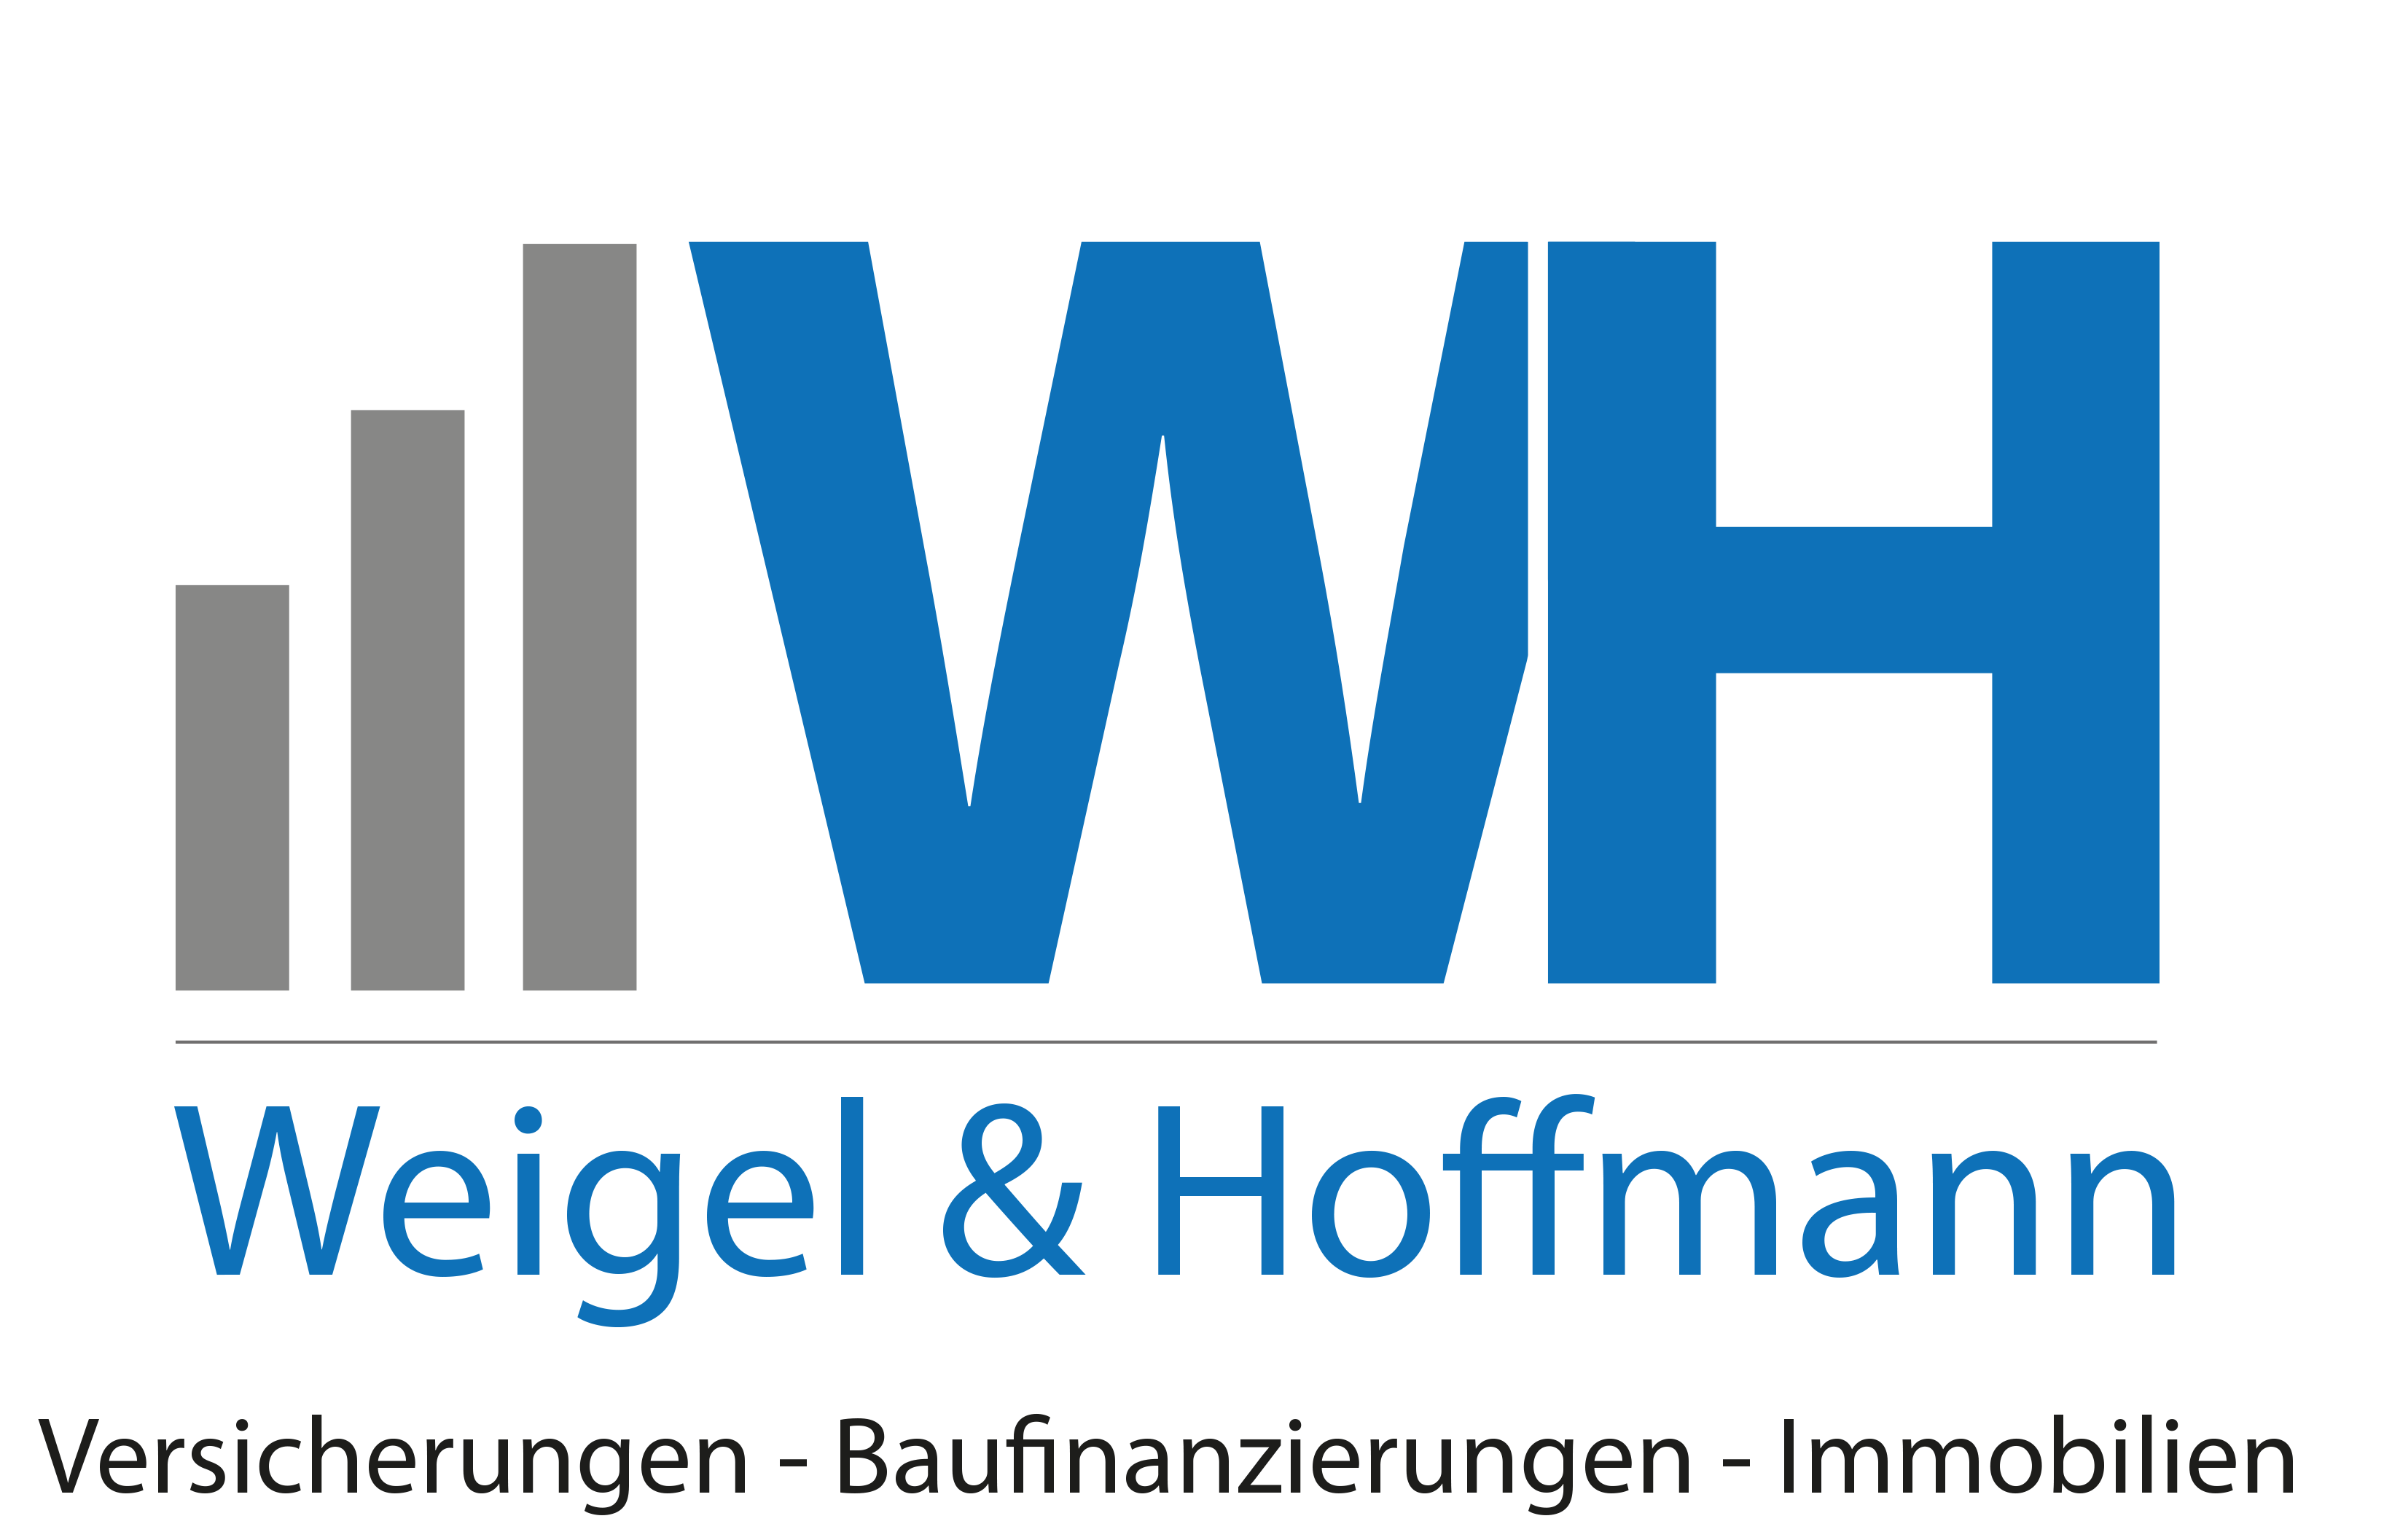 Weigel & Hoffmann